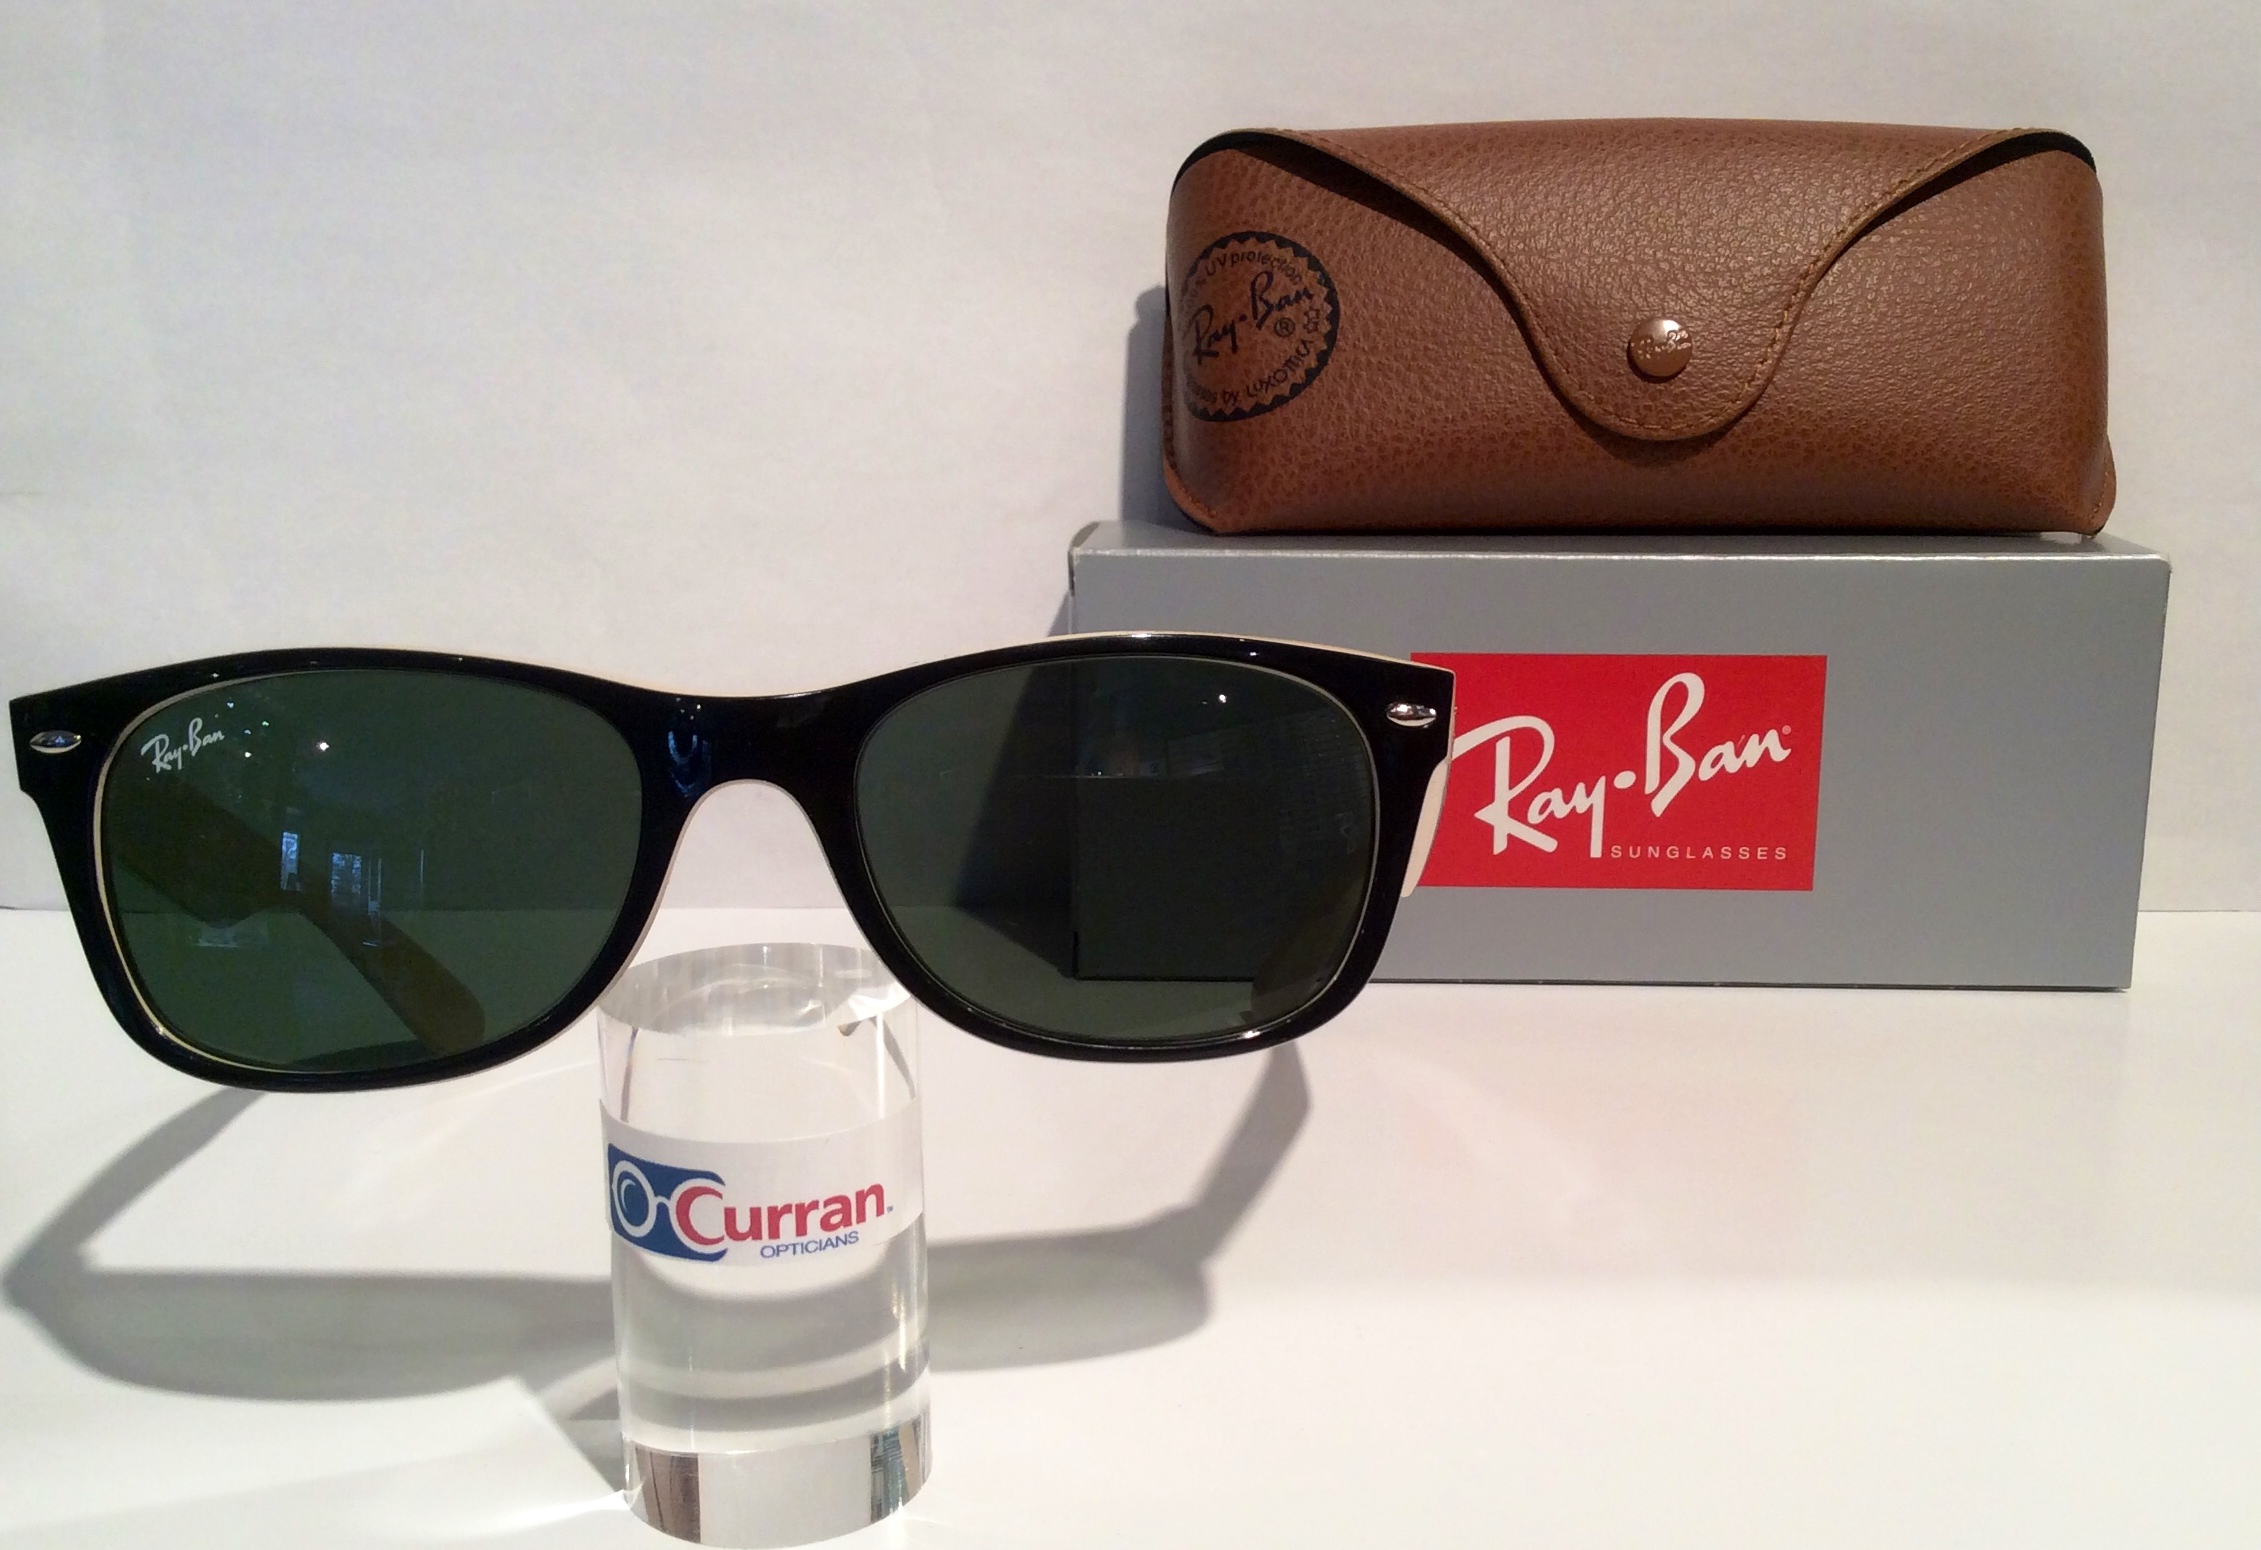 6a89180840a Ray Ban Rb2132 875 Sunglasses